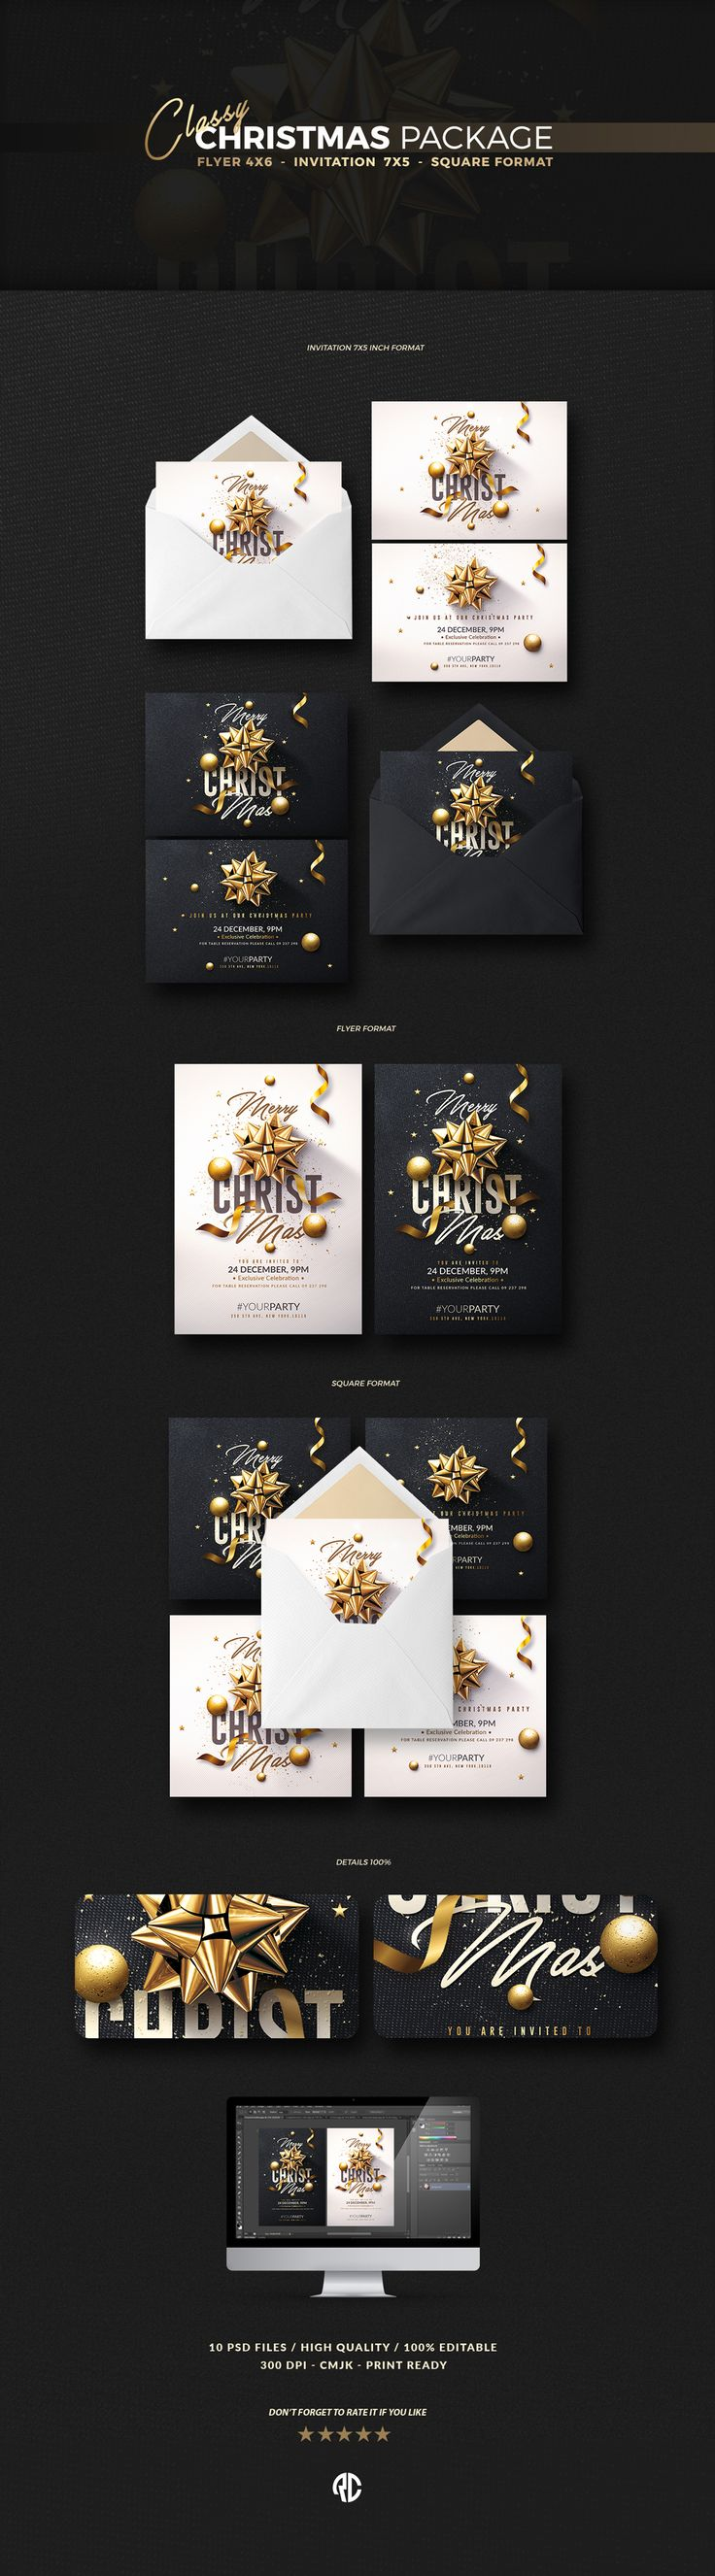 Best 25 Email christmas cards ideas on Pinterest